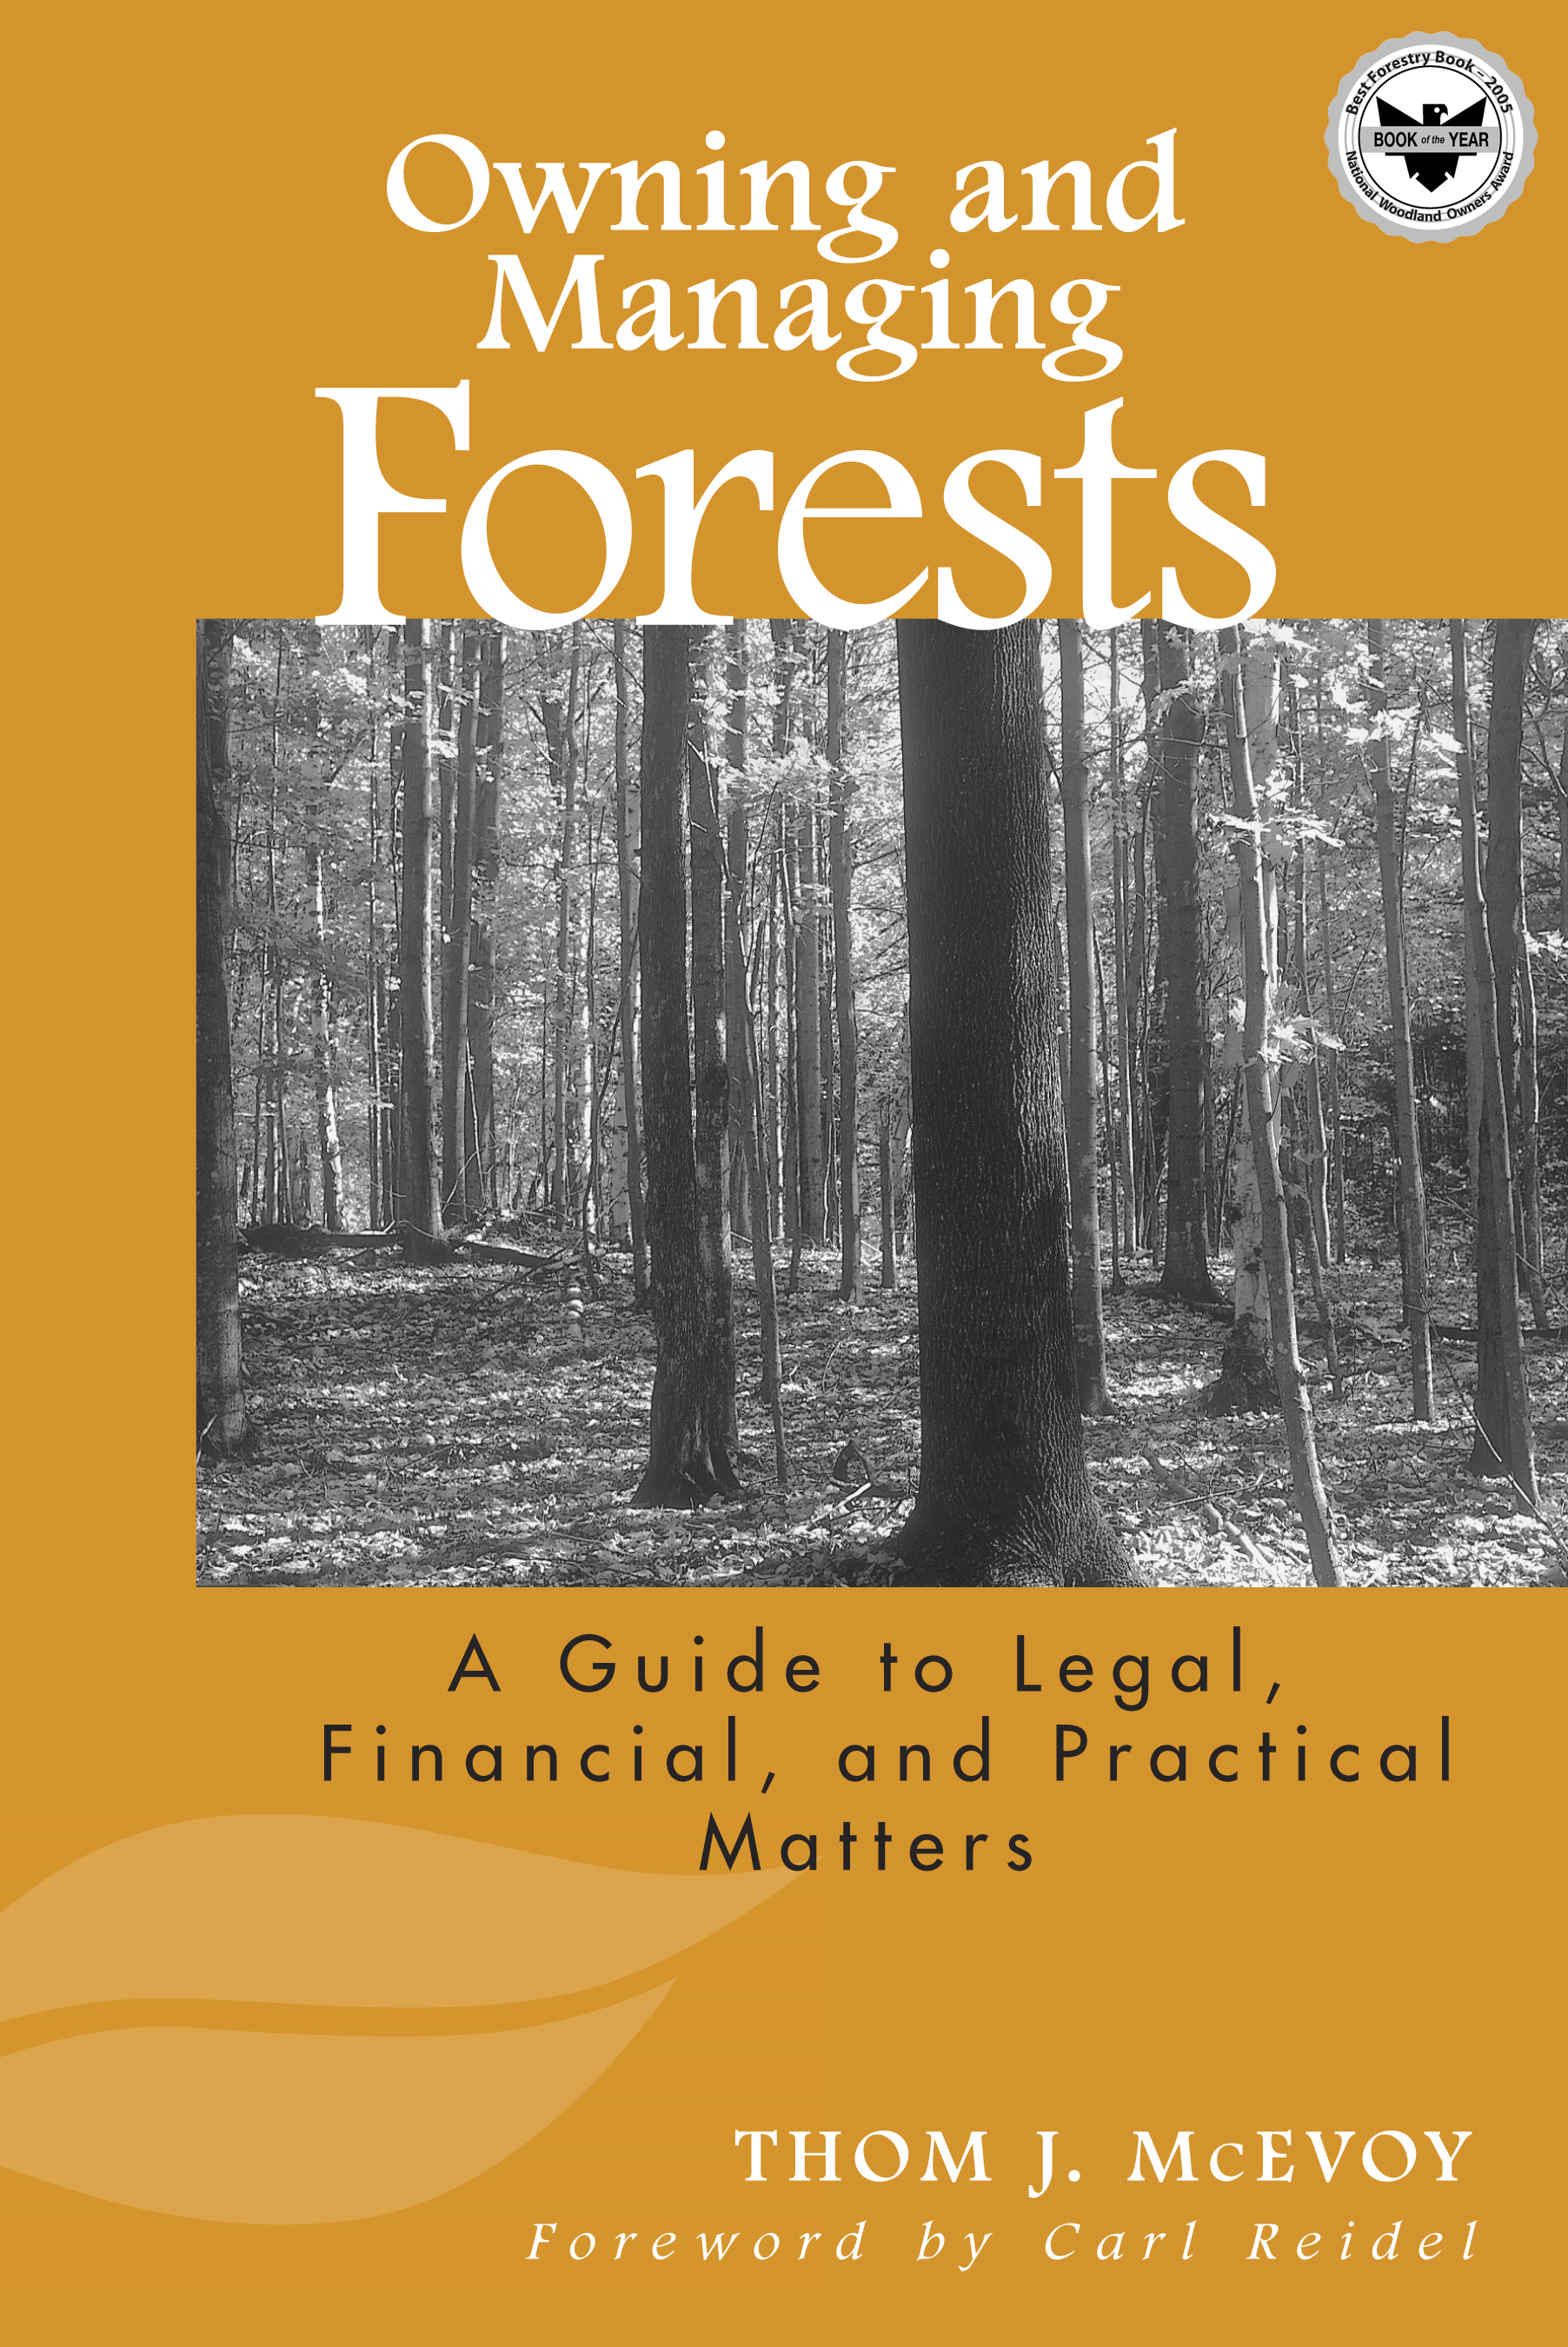 Owning and Managing Forests